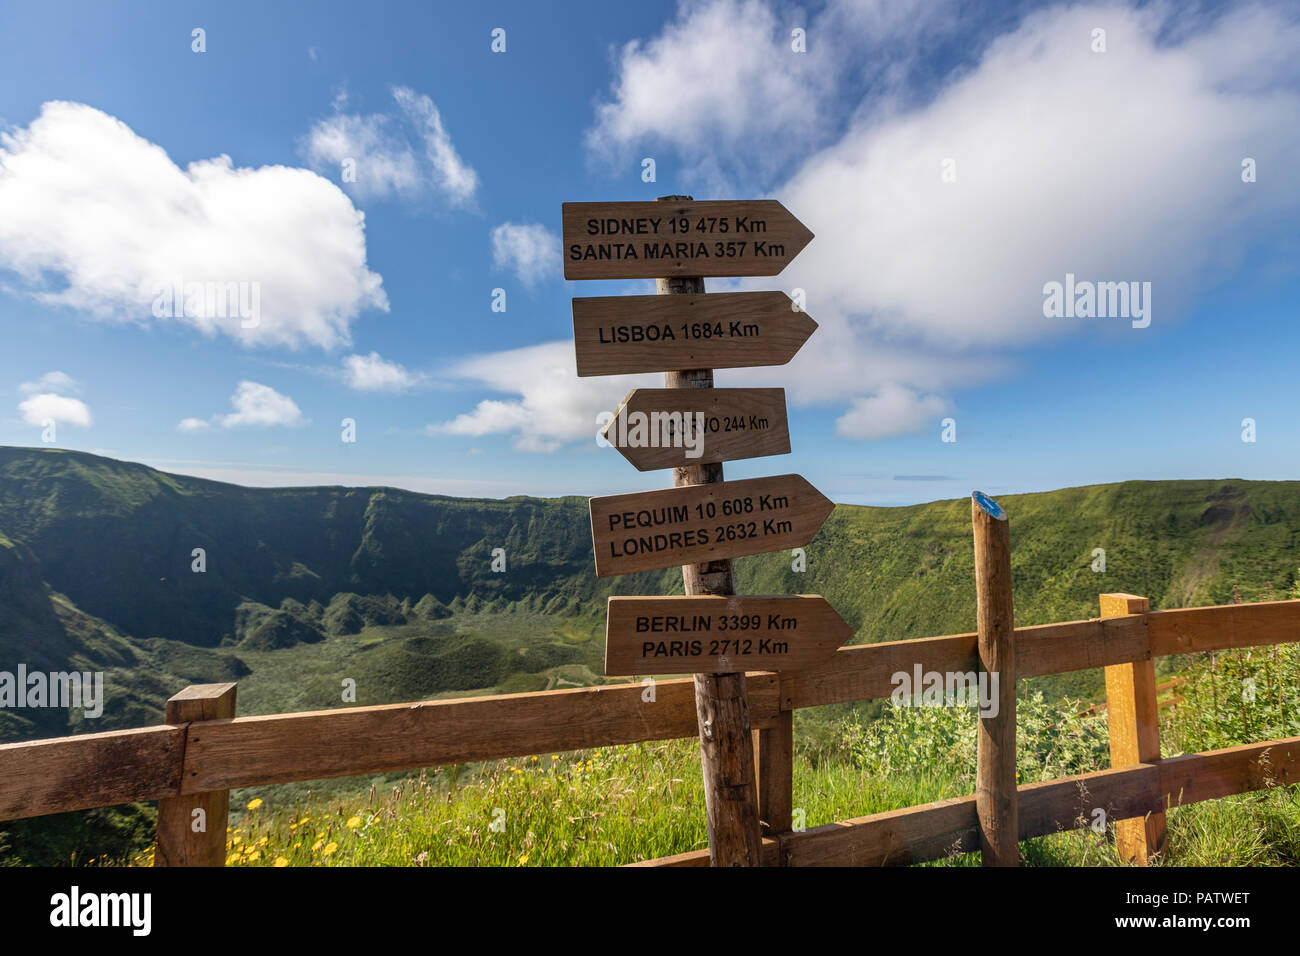 World cities distance sign in Caldeira do Cabeço Gordo, stratovolcano, in Faial island, Azores, Portugal - Stock Image